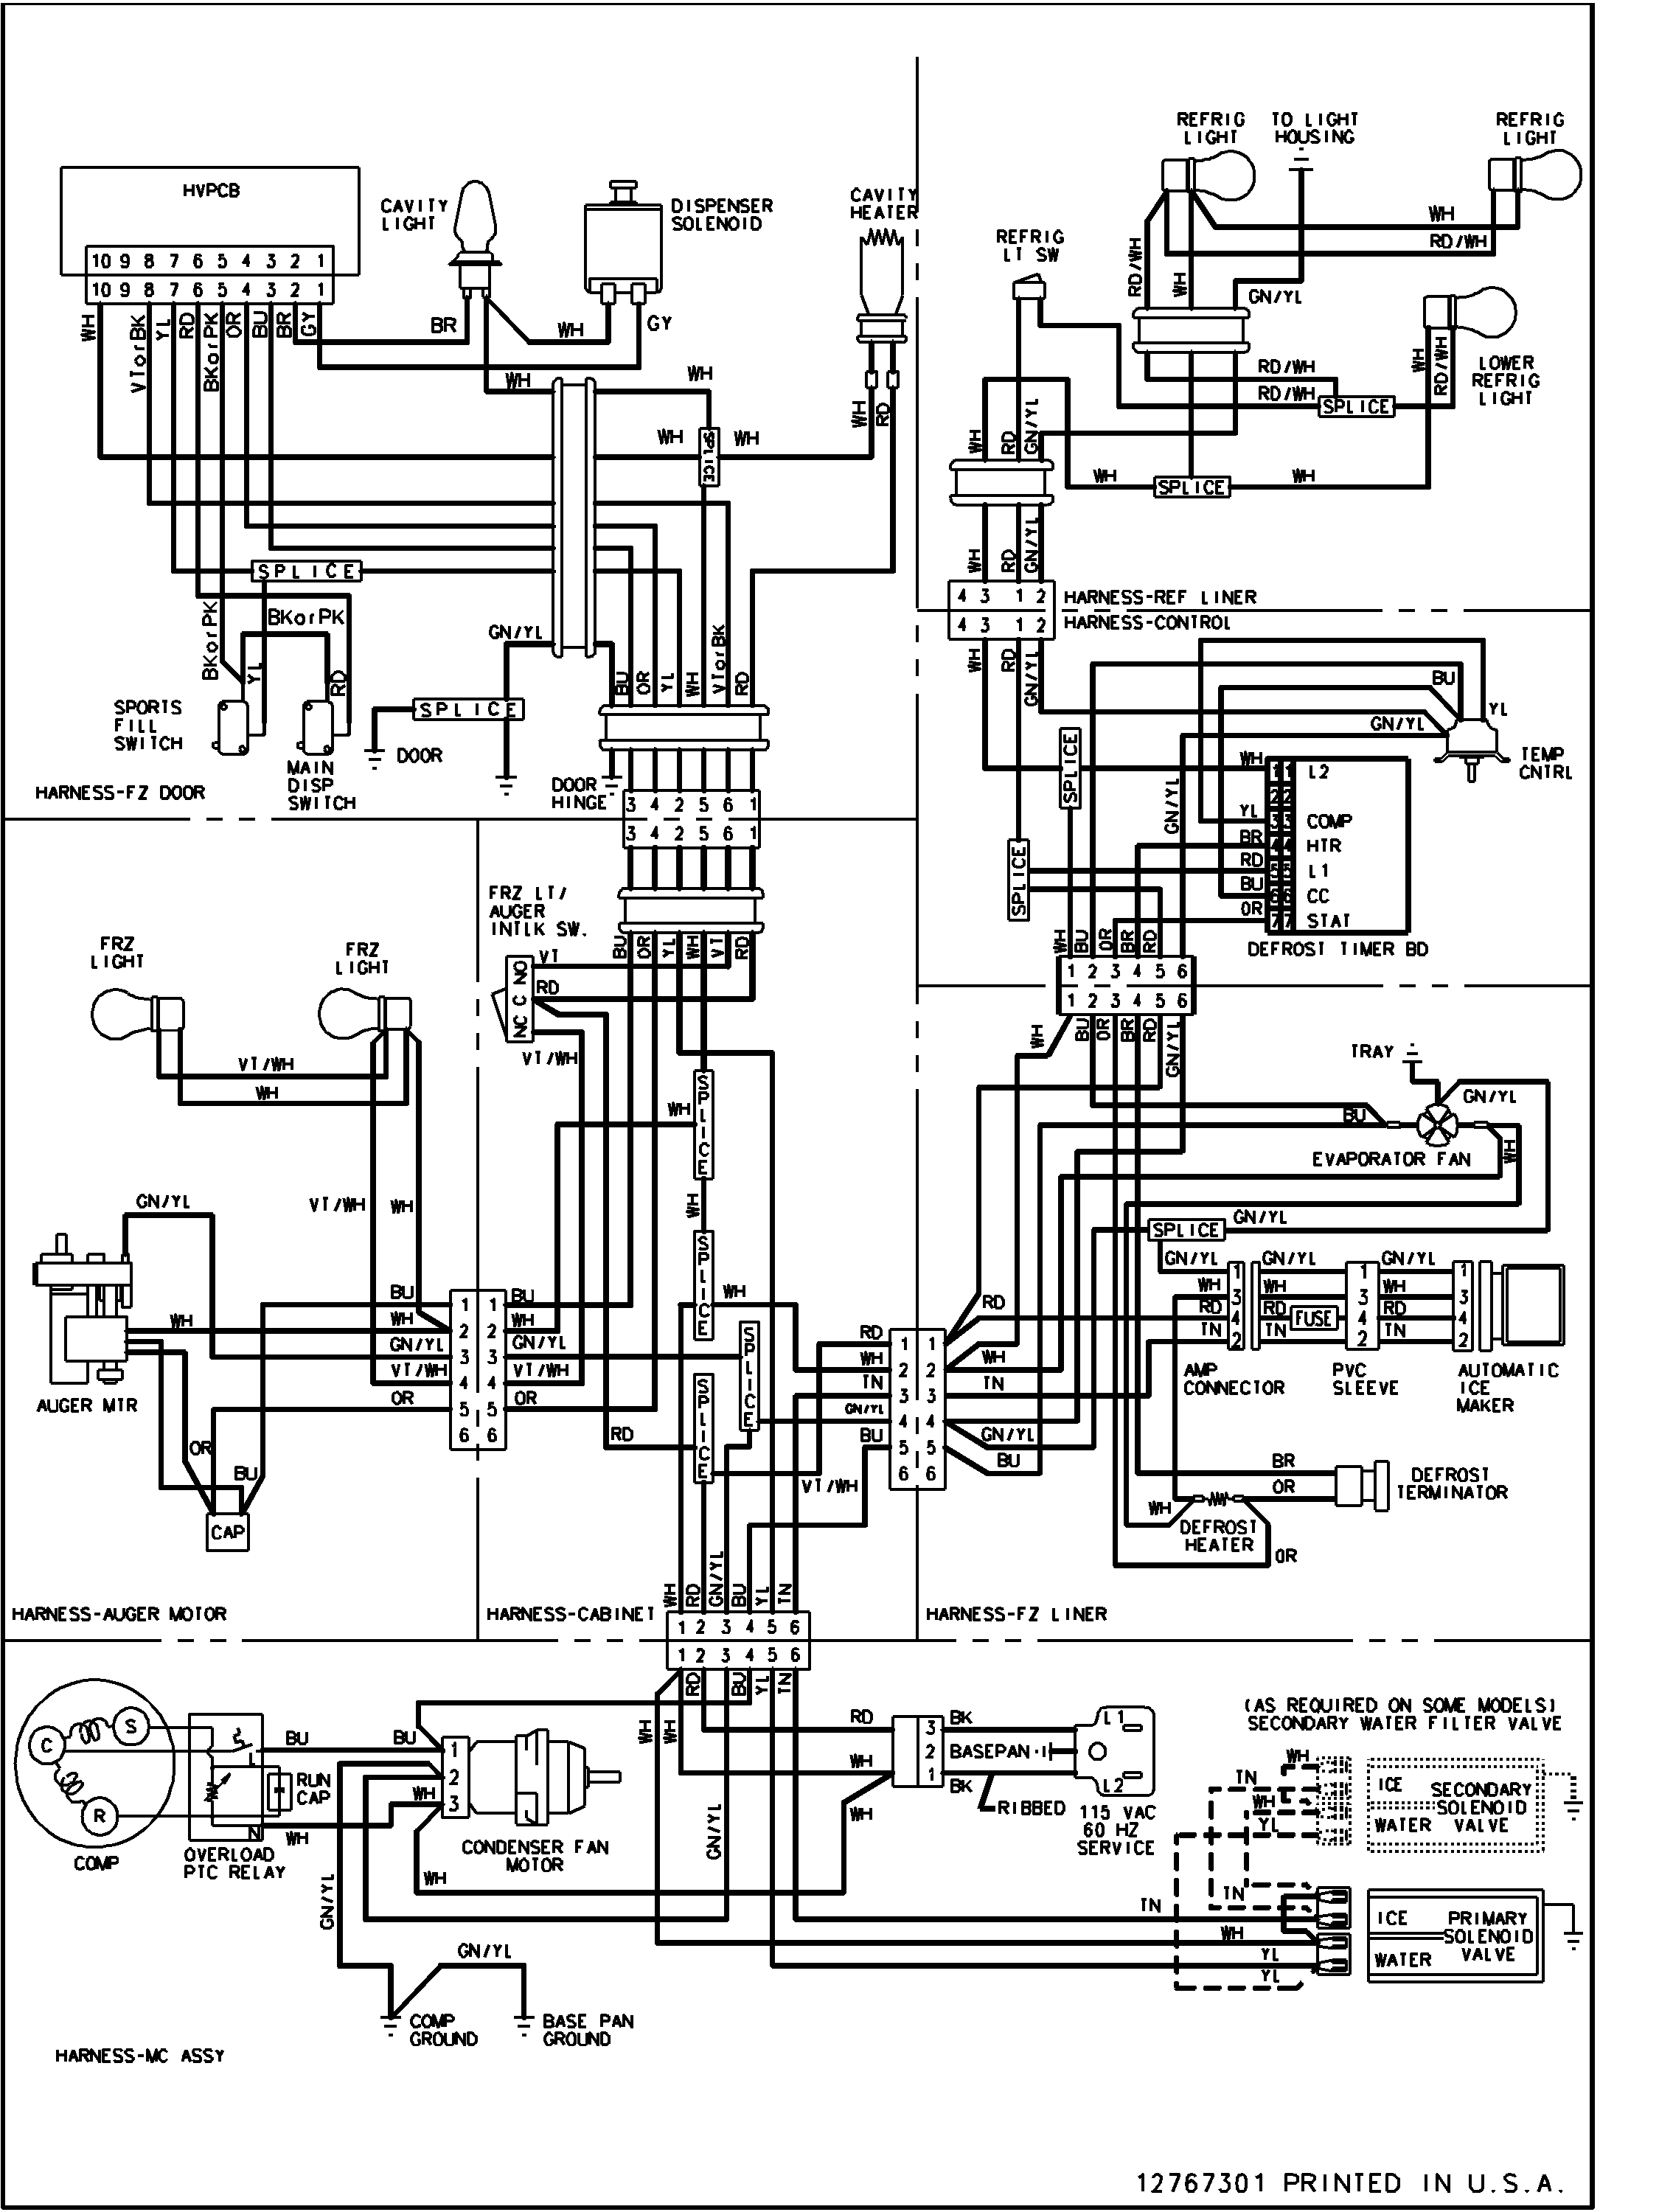 Luxaire Hamd-fo24sa Wiring Diagram